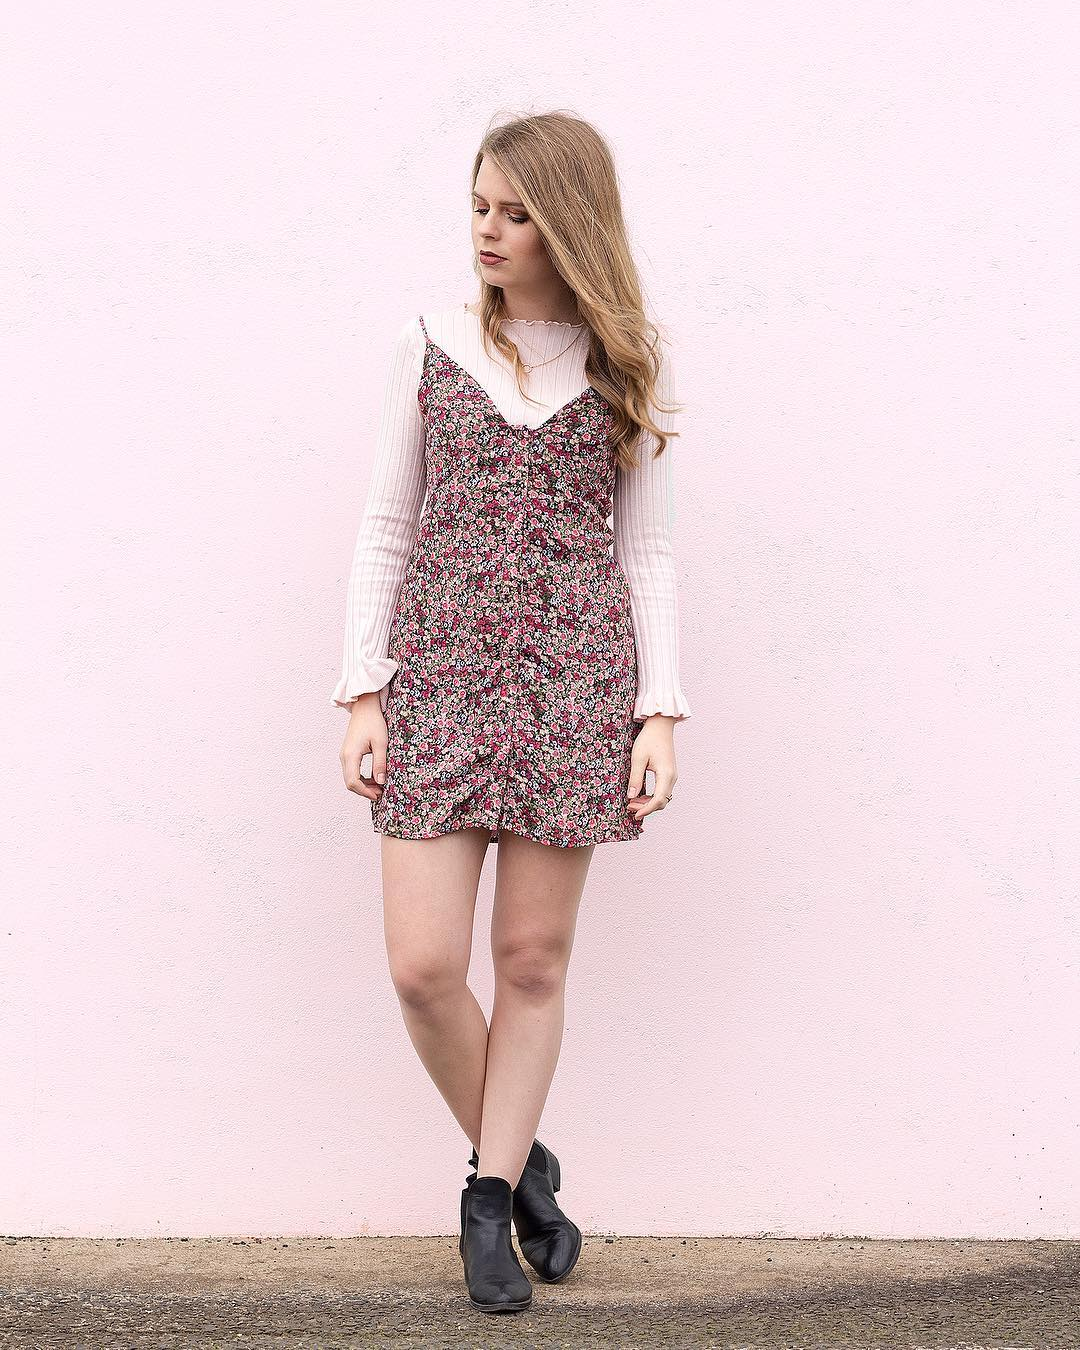 Chic Short Floral Dress Paired With Knit Top